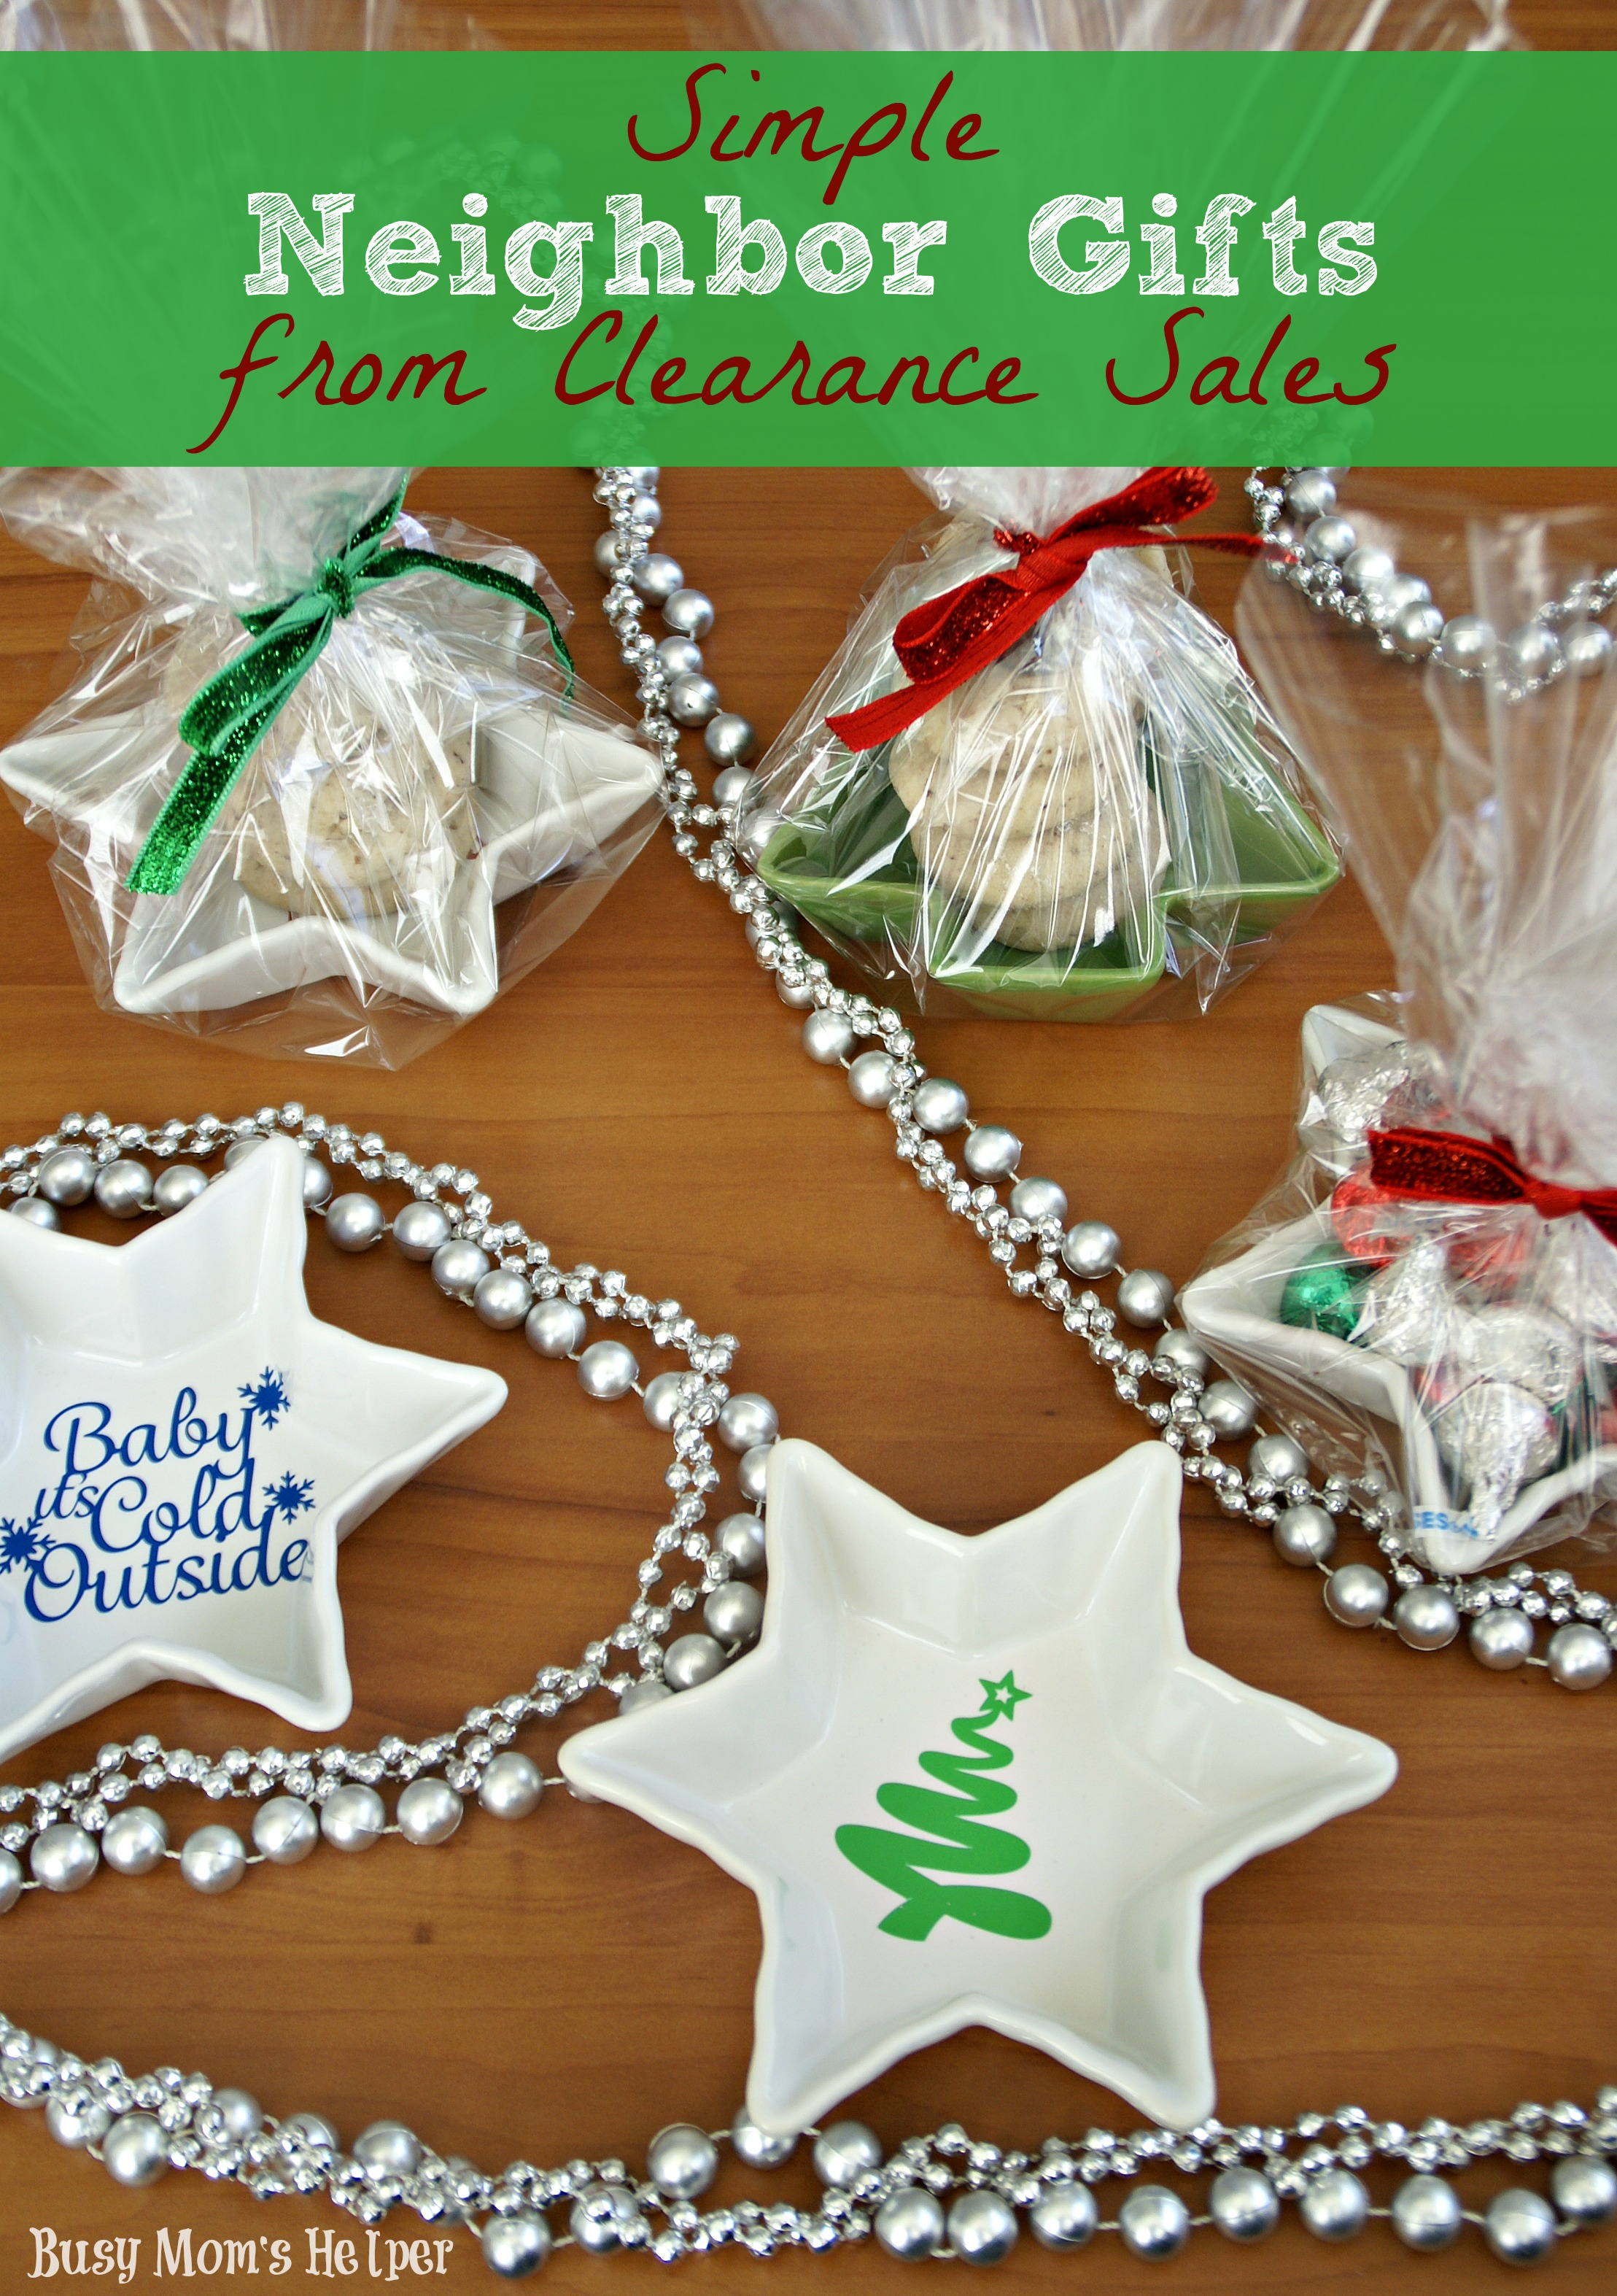 Simple Neighbor Gifts from Clearance Sales - Busy Mom\'s Helper